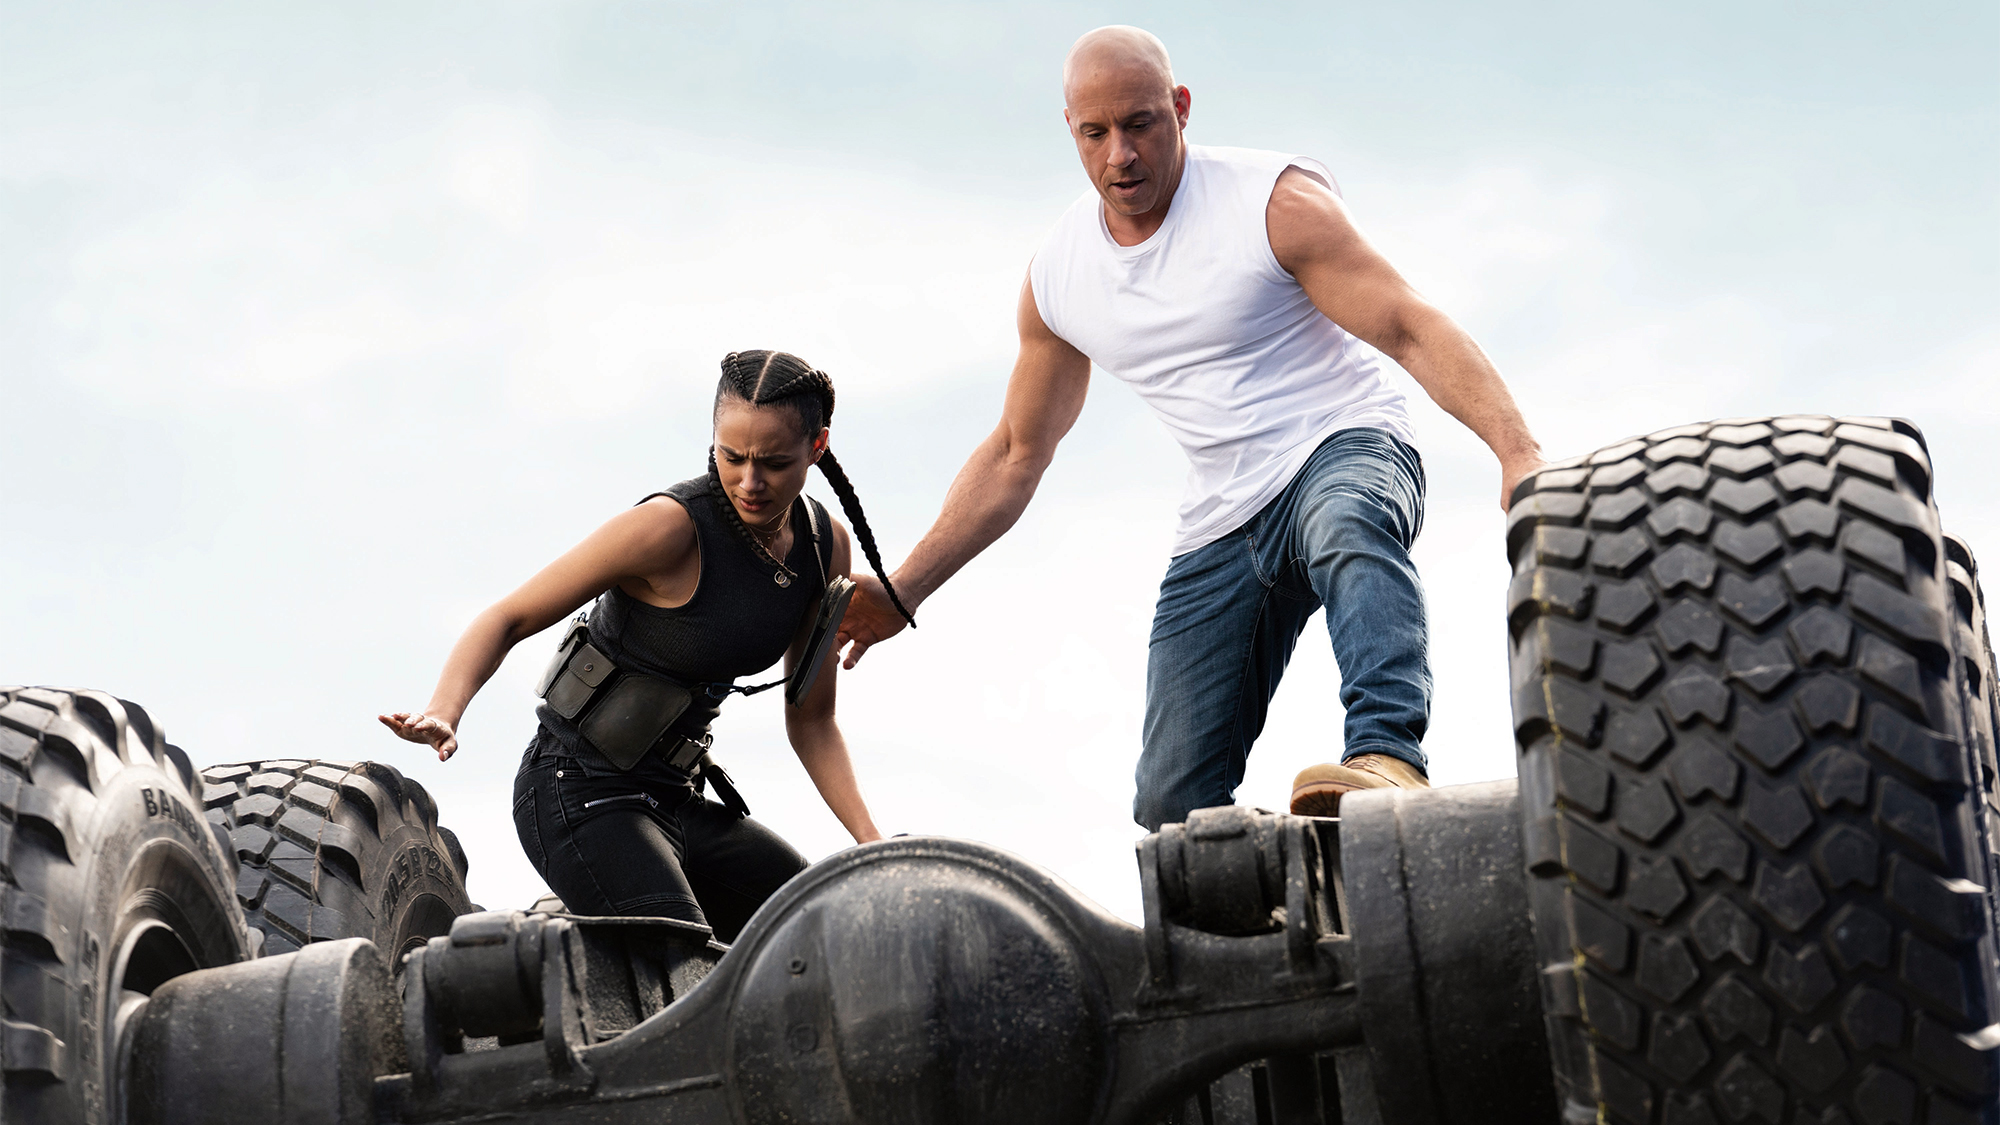 F9 Review: Fast & Furious Returns To Form With Biggest Action Yet